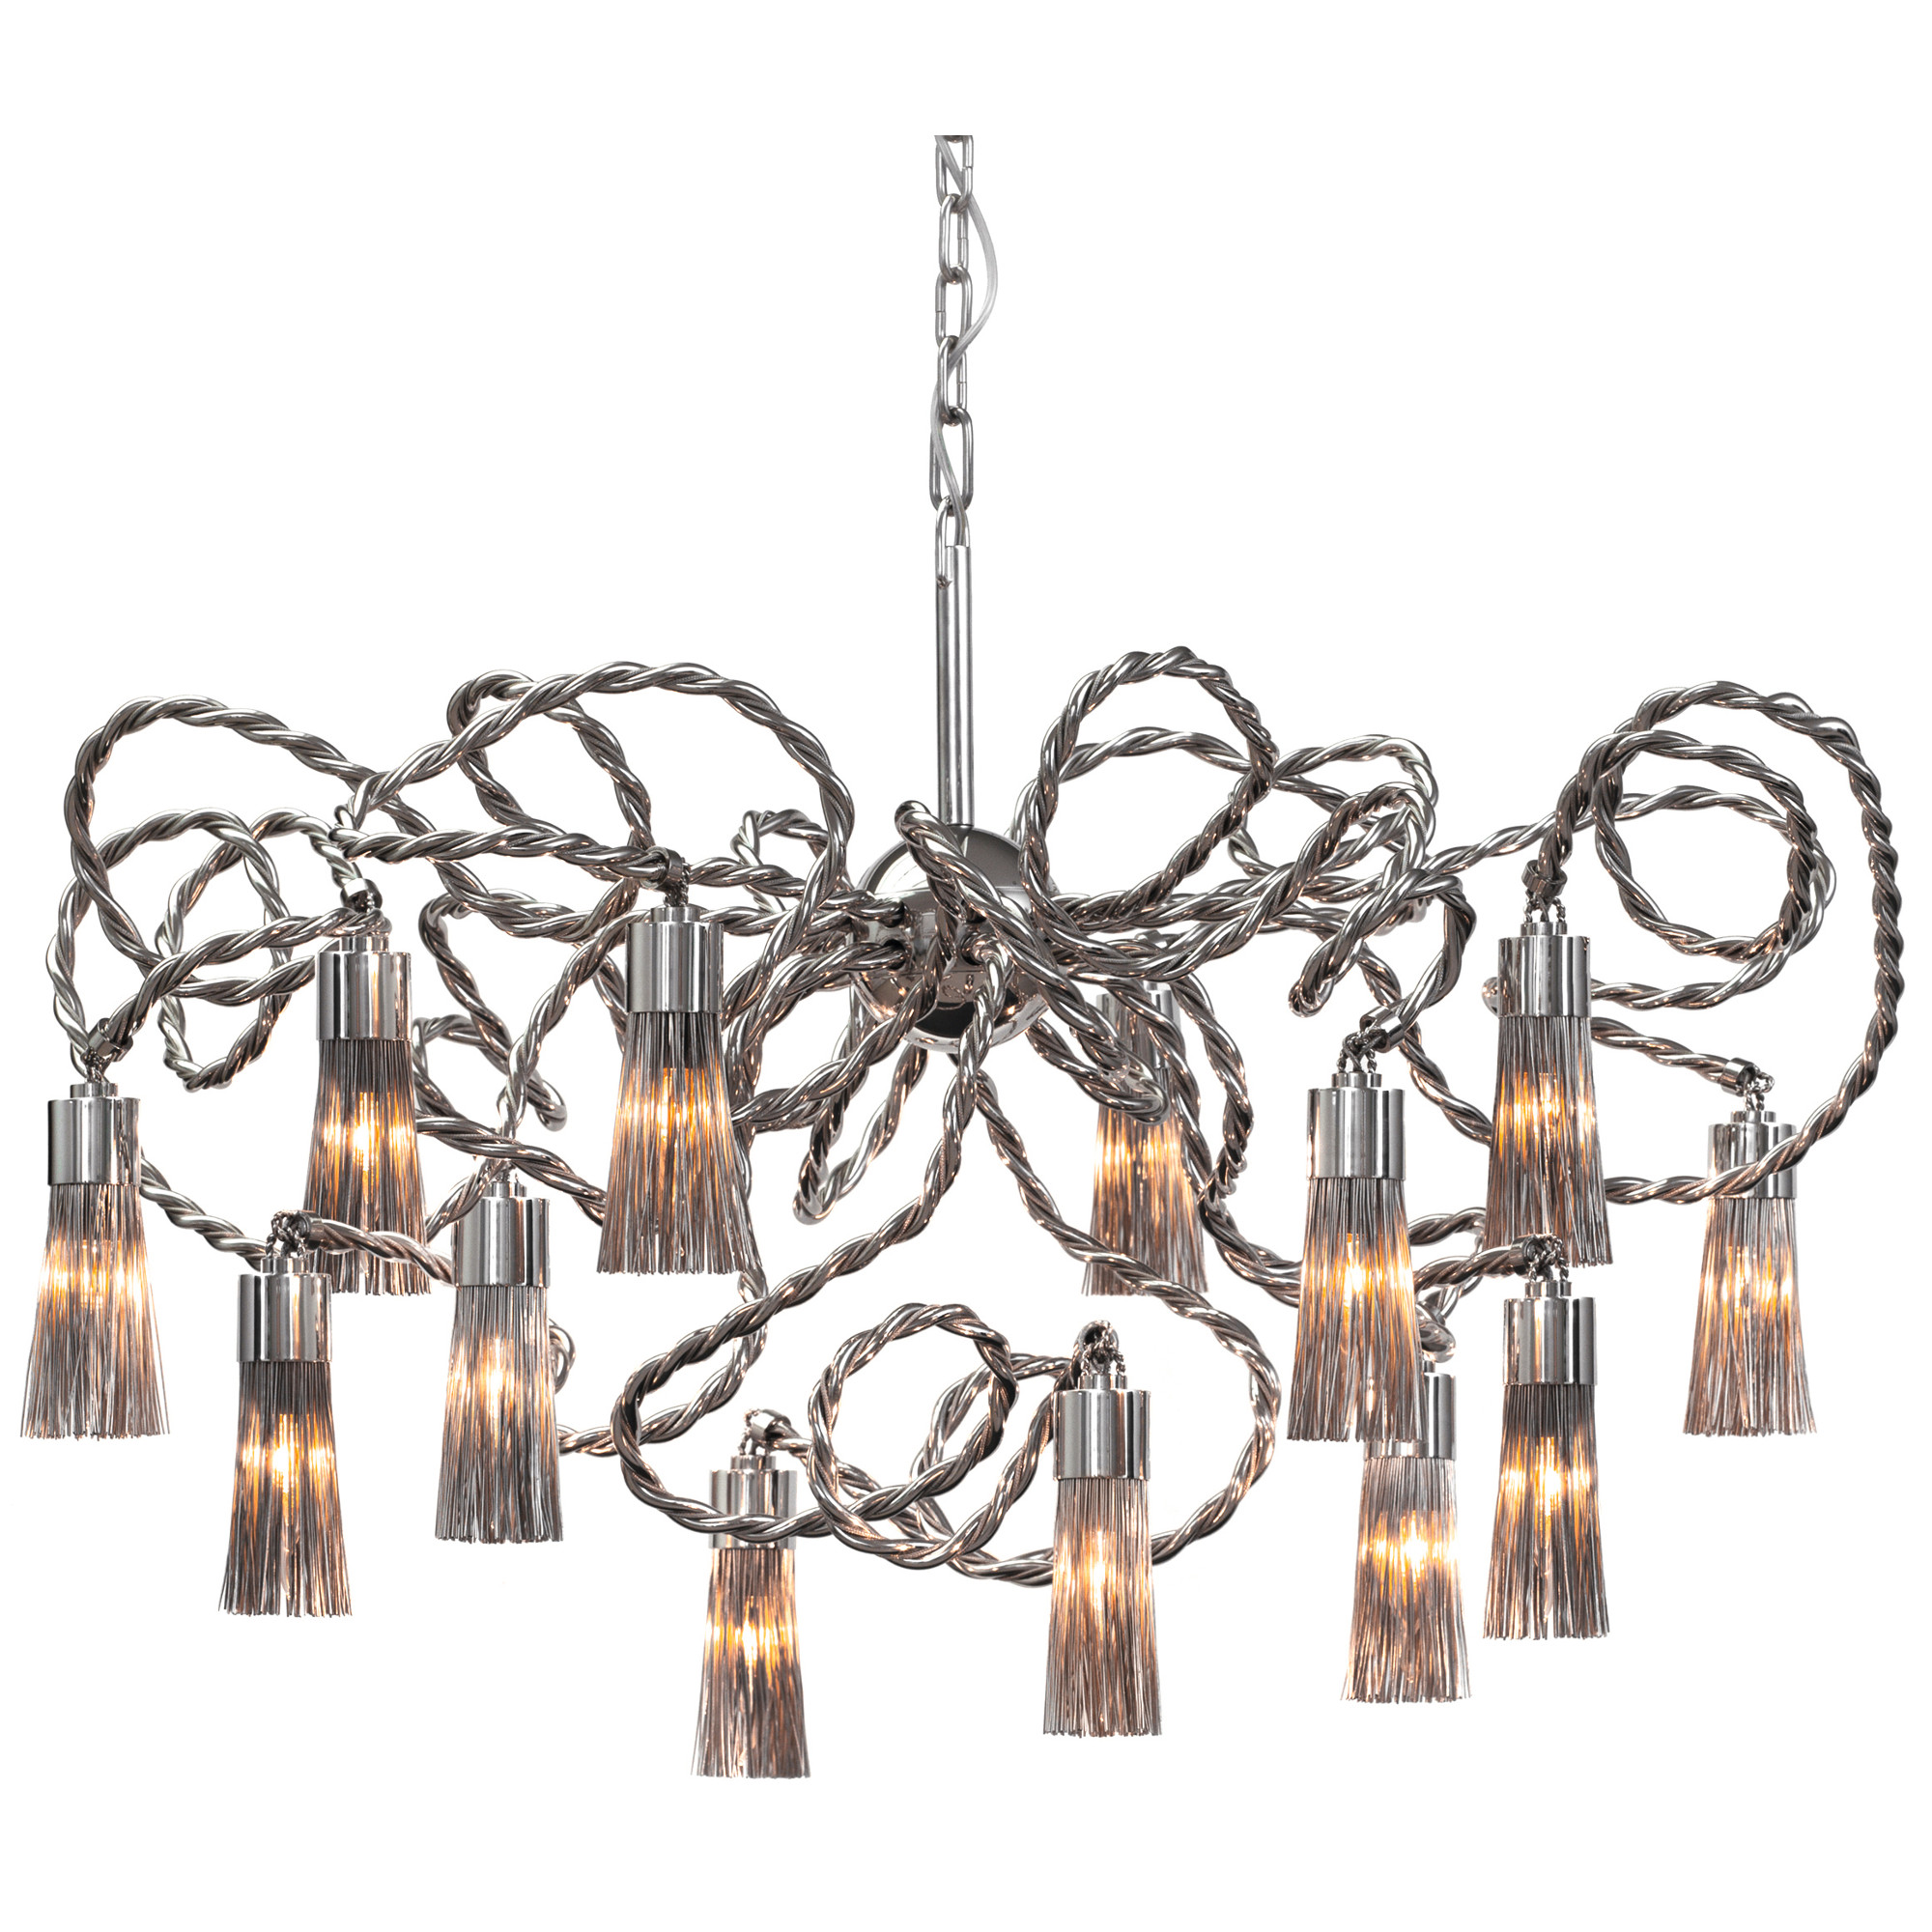 Sultans of swing round chandelier by brand van egmond sosc100nu aloadofball Image collections